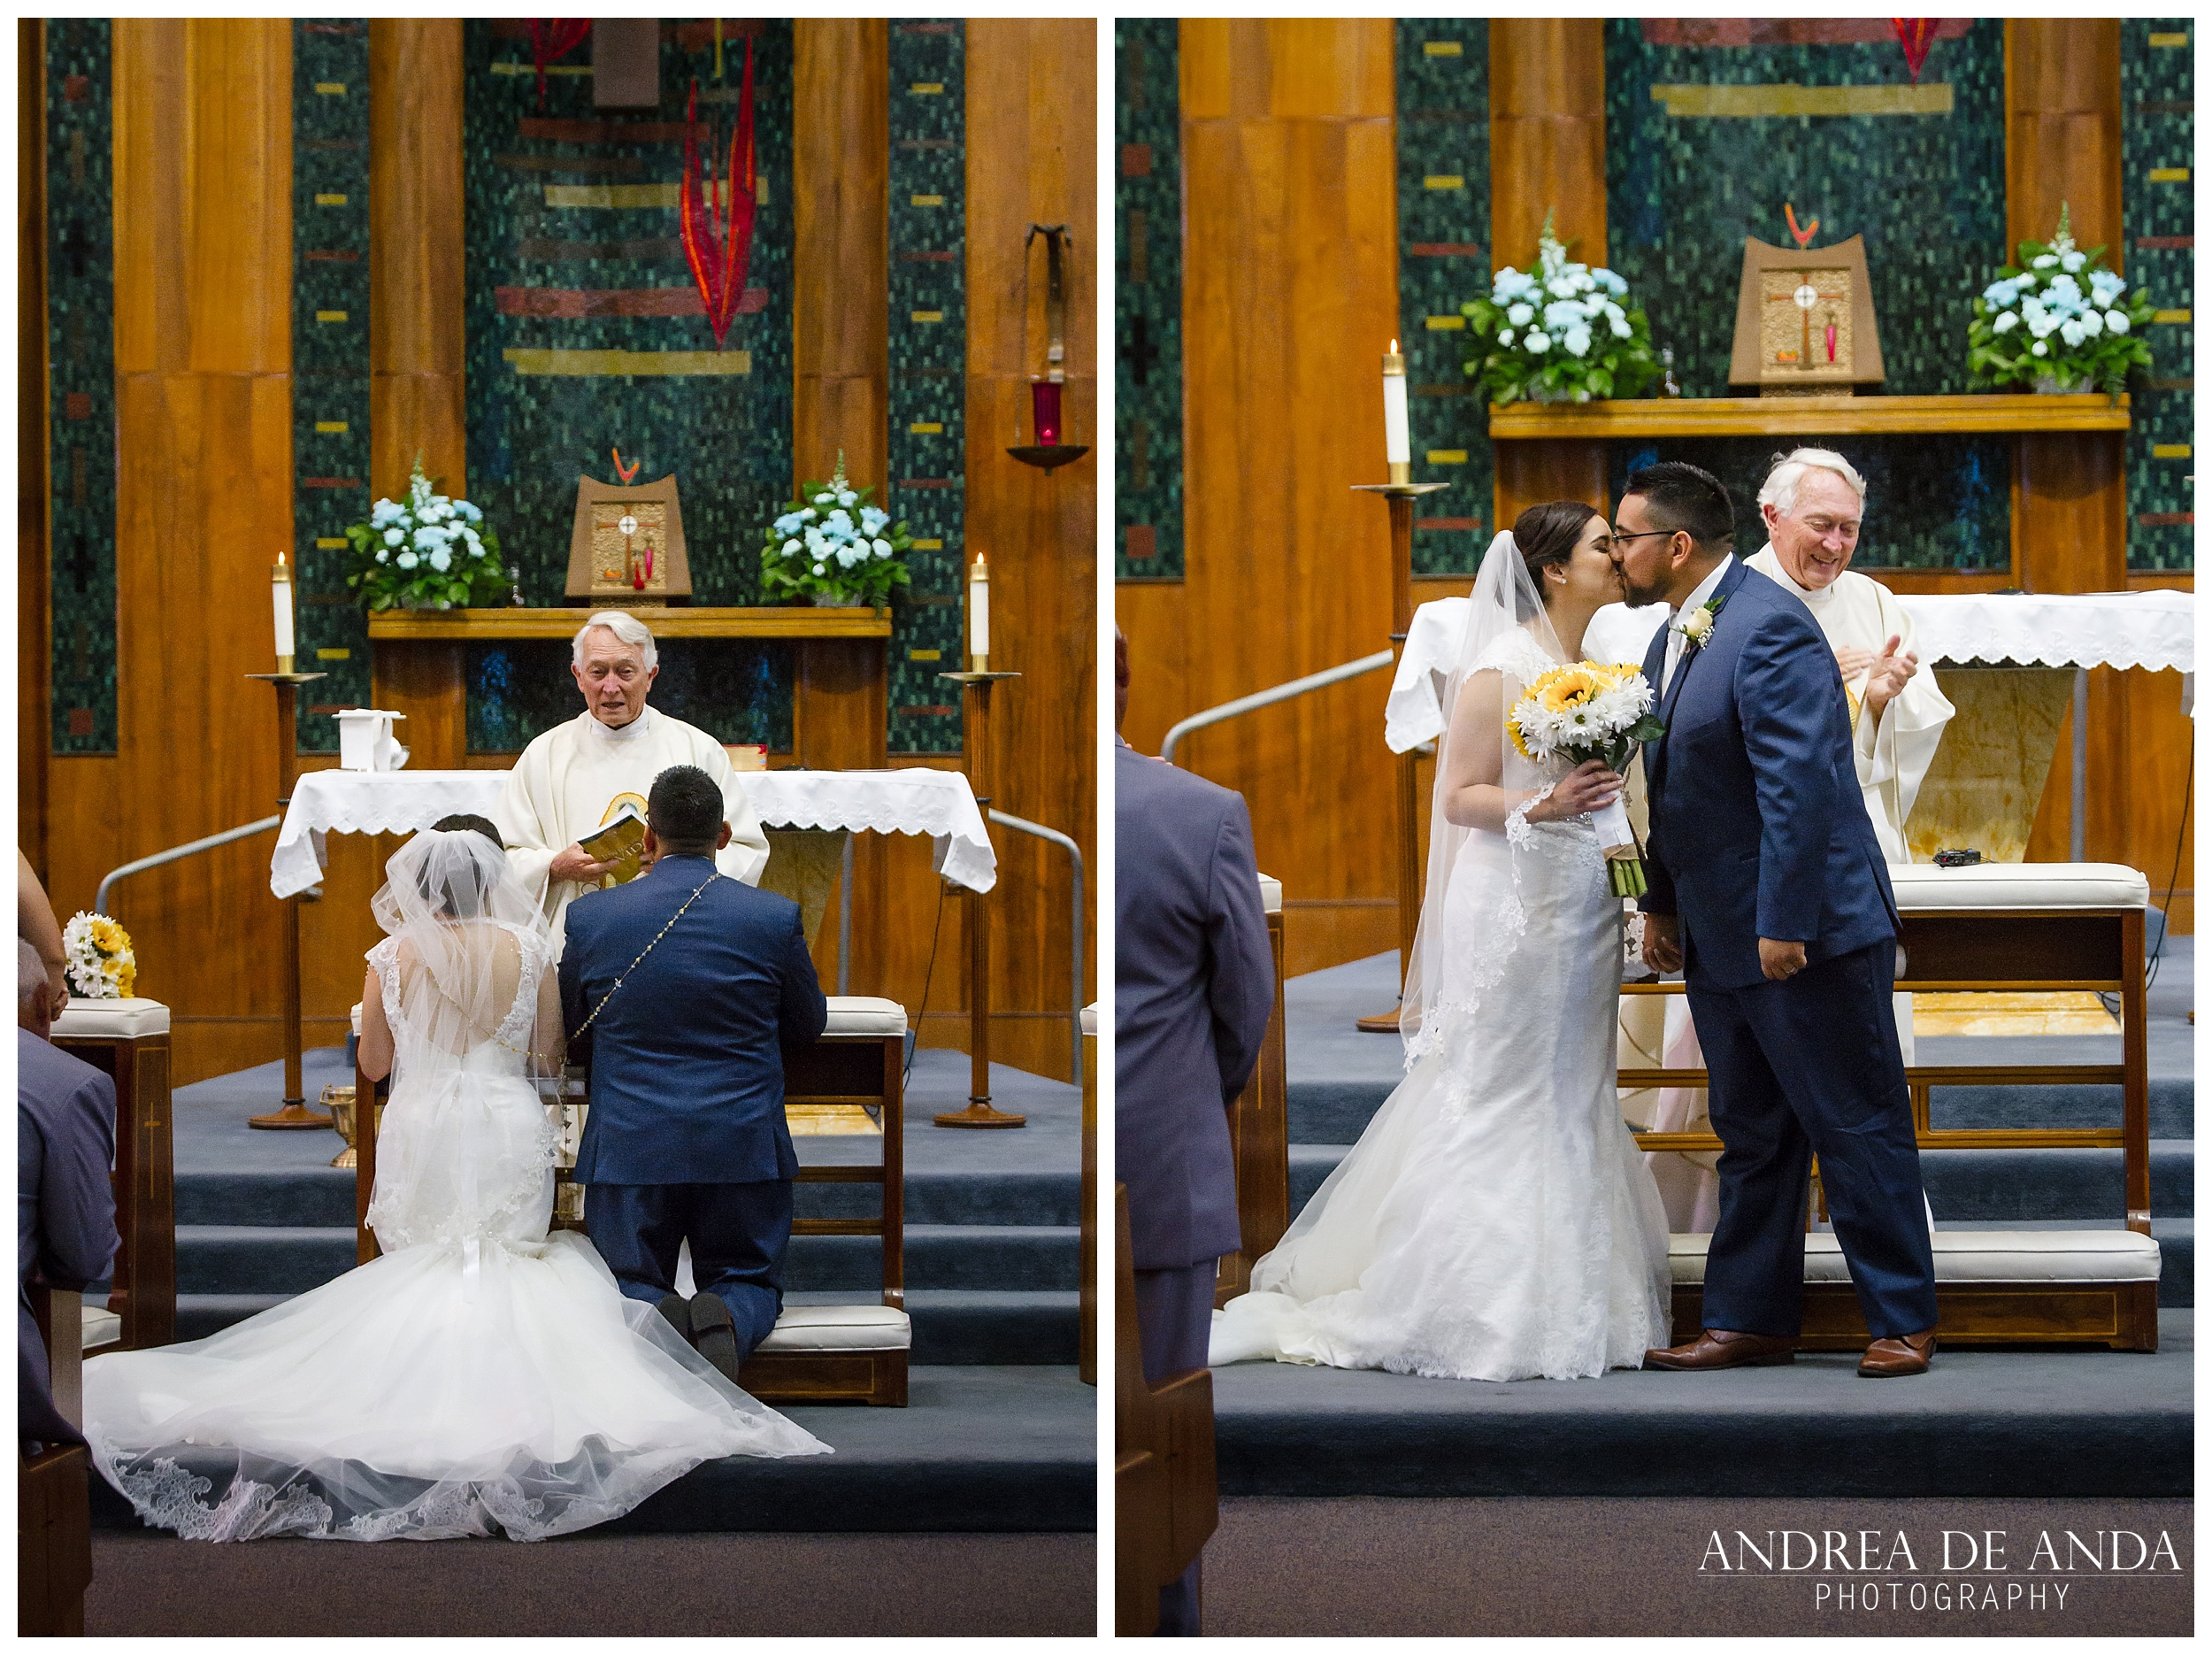 San Jose Wedding Photograhy by Andrea de Anda Photography__0010.jpg